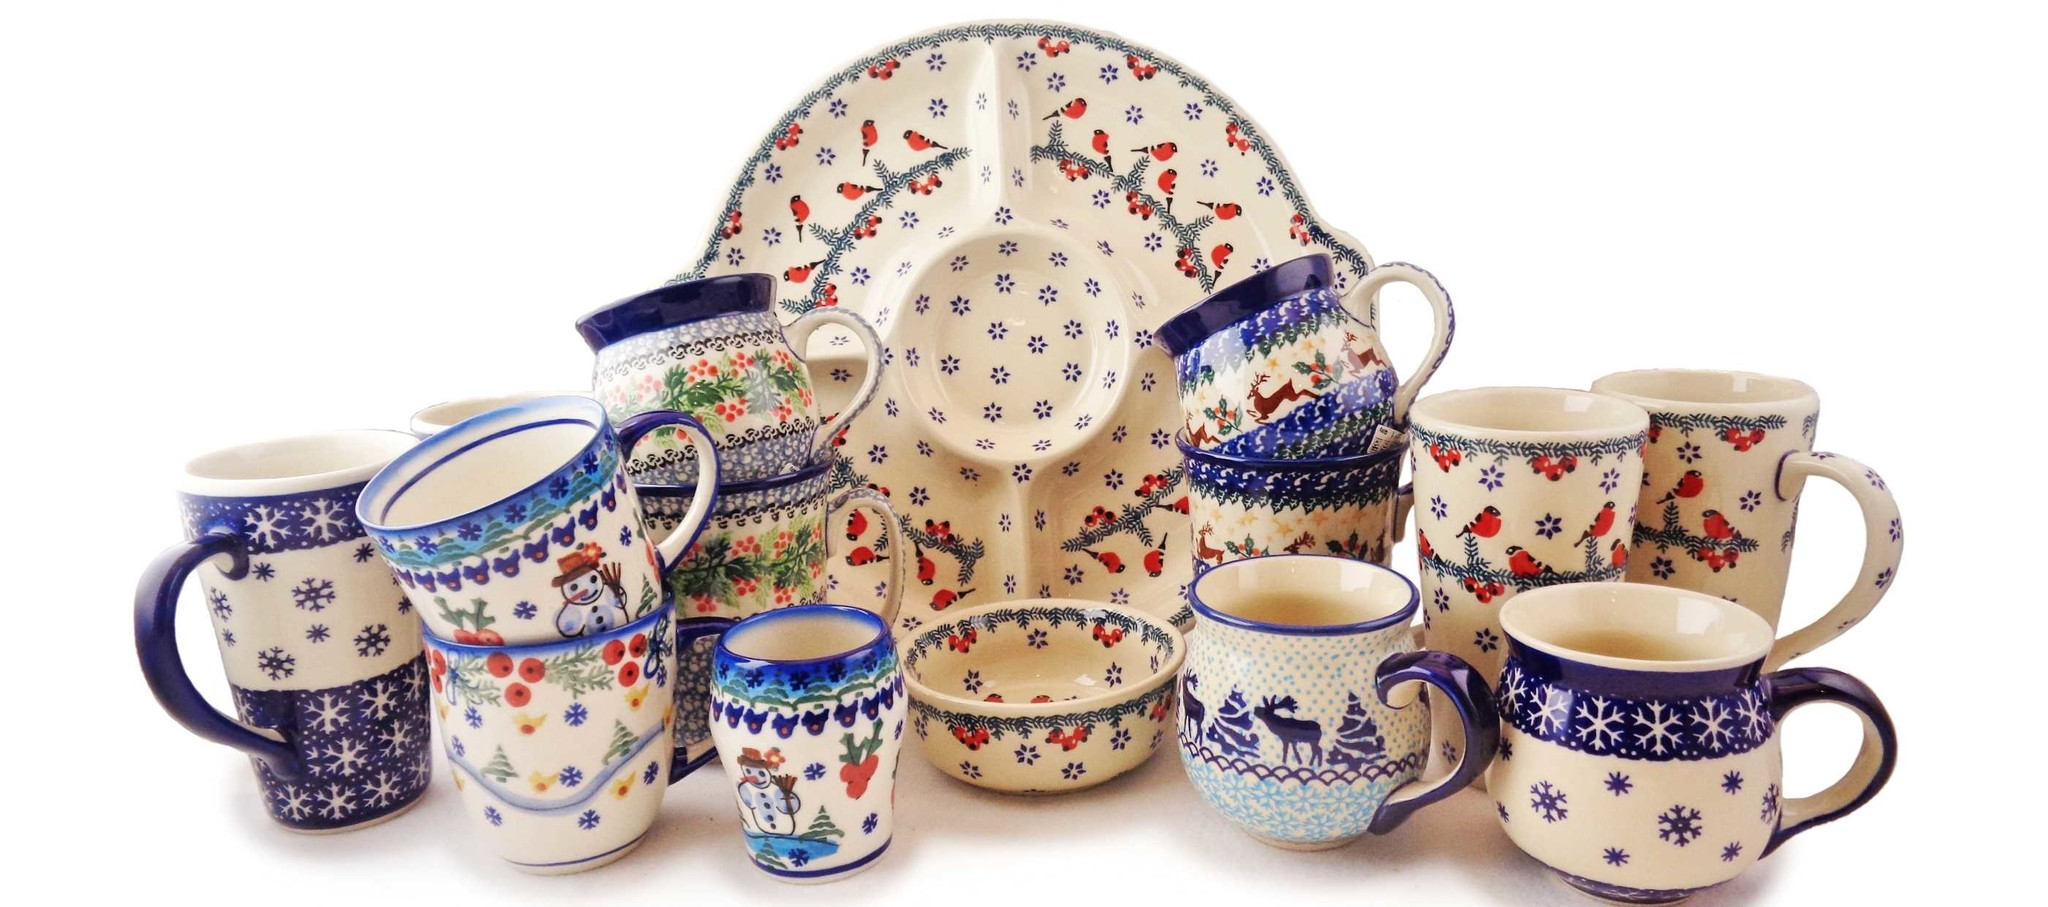 Check Out Our Festive Holiday Polish Stoneware Patterns